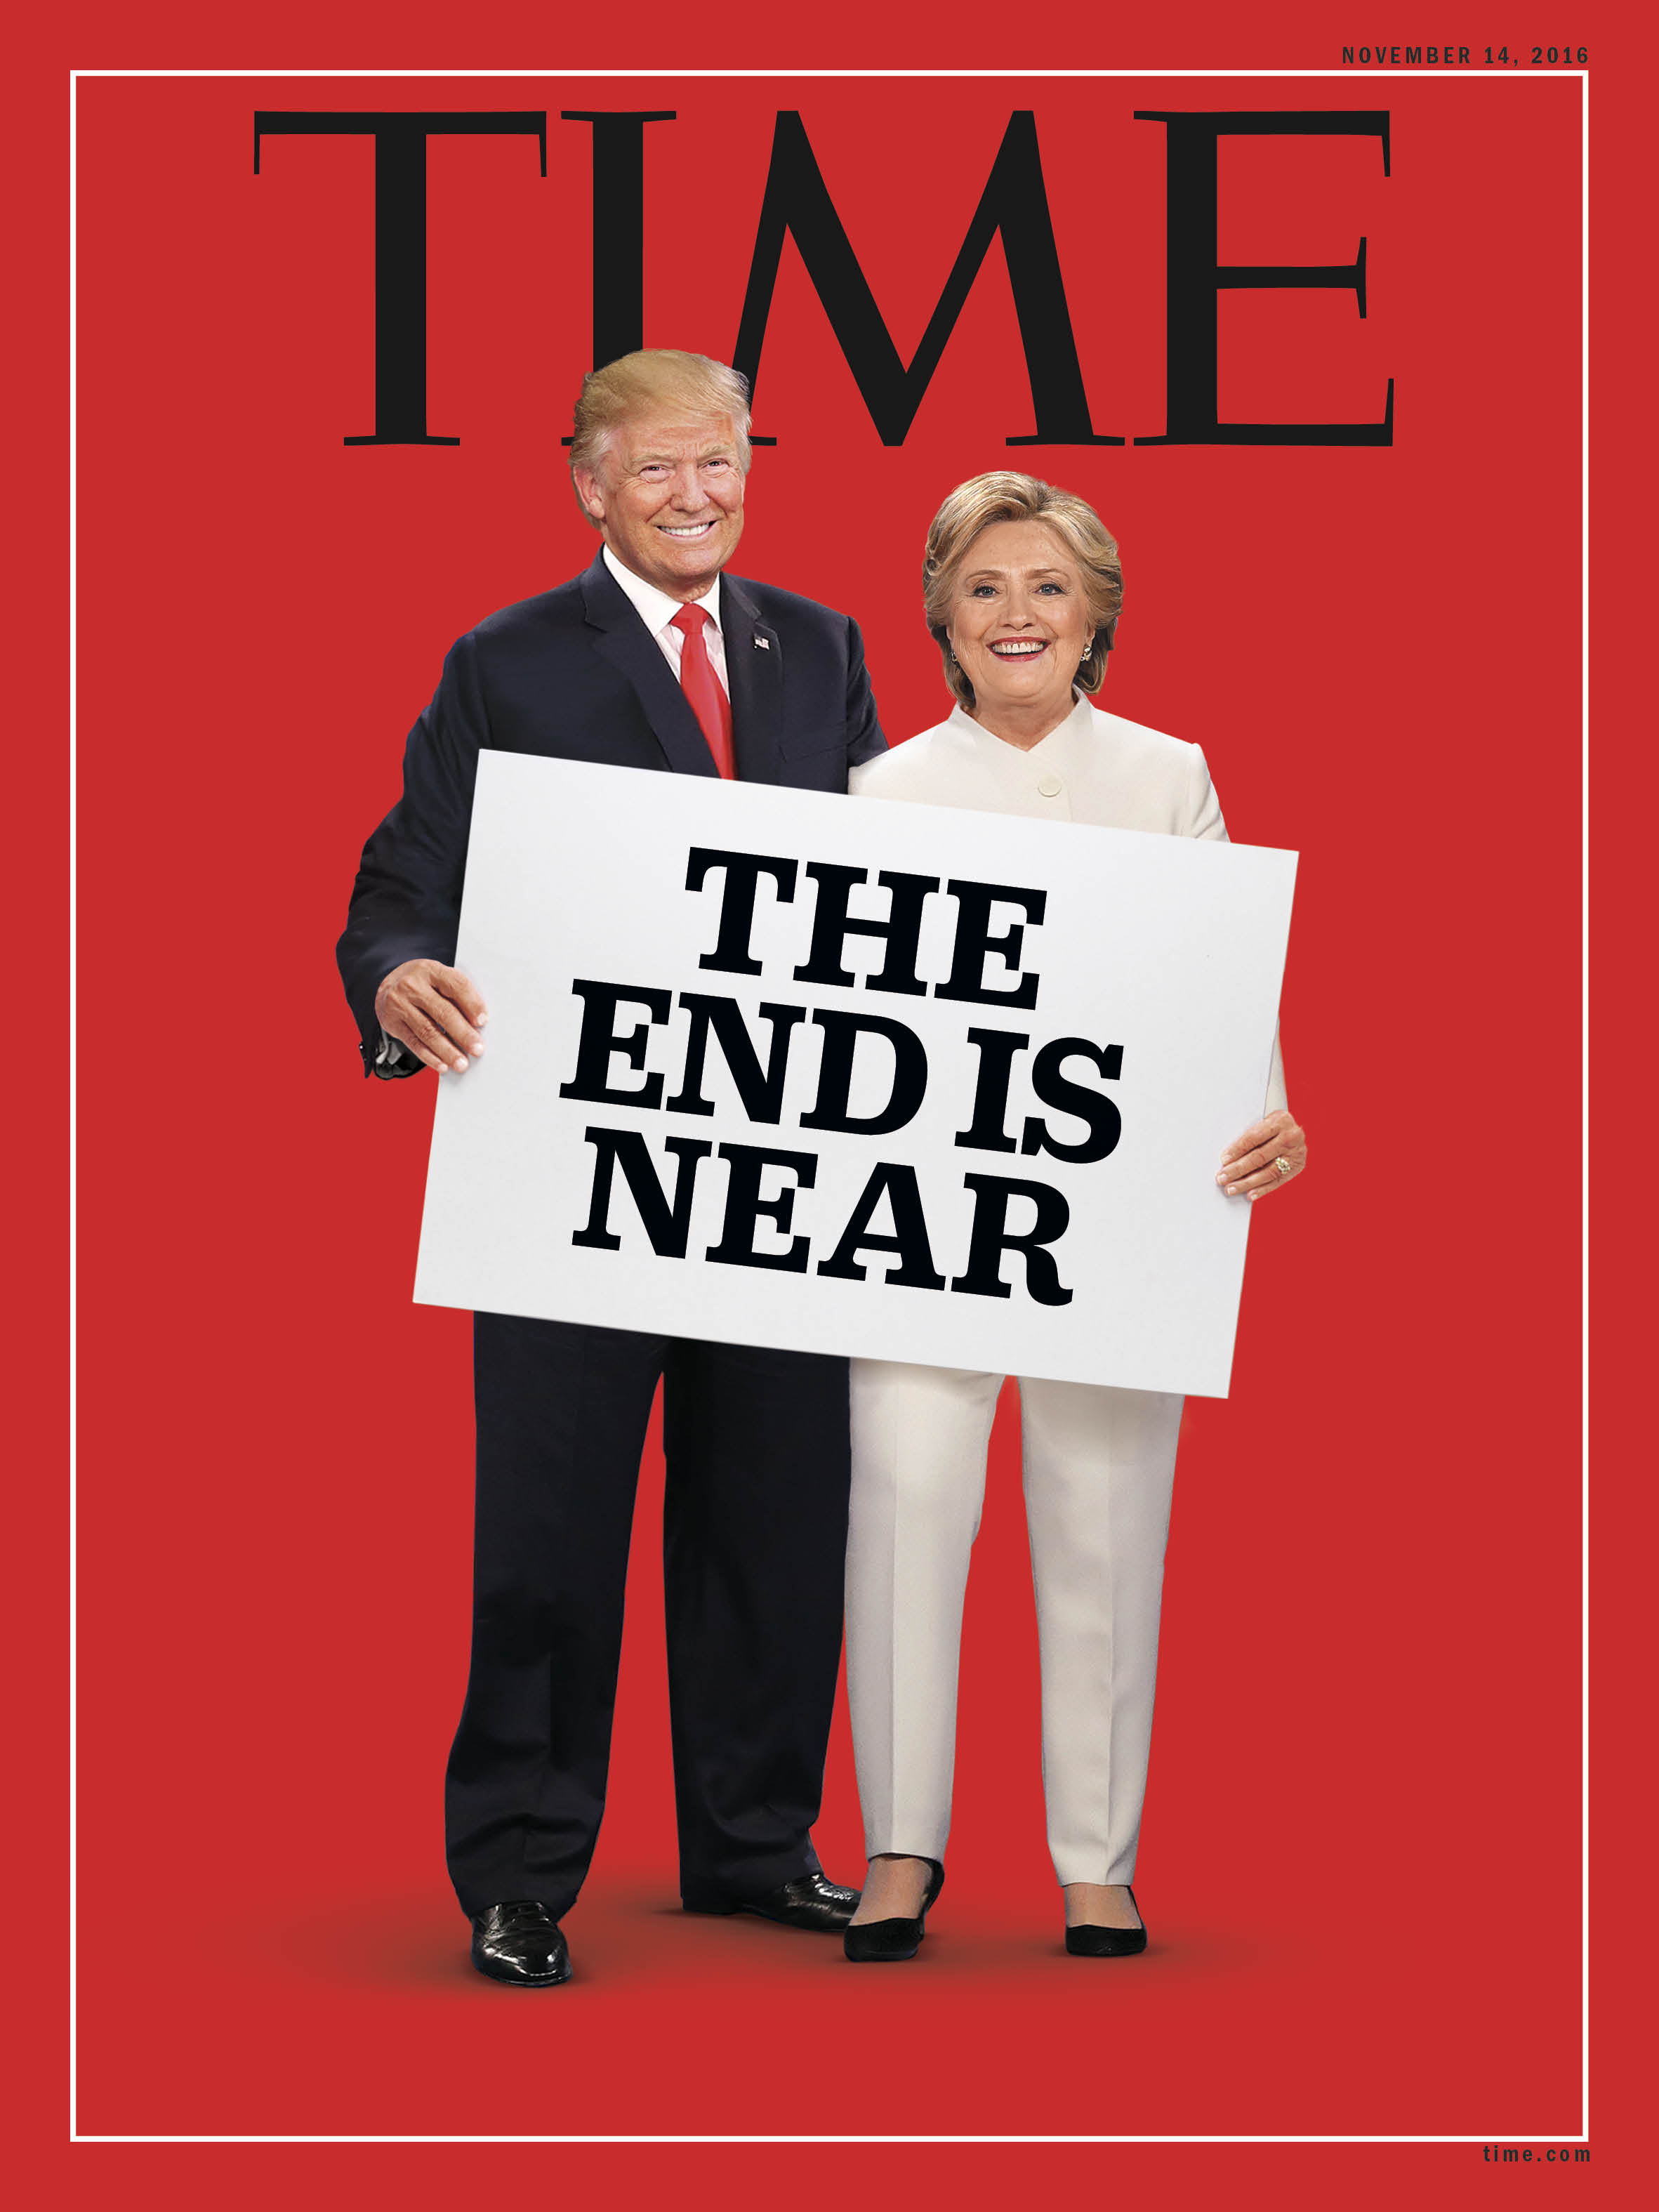 Time Magazine Election 2016 Cover - The End Is Near